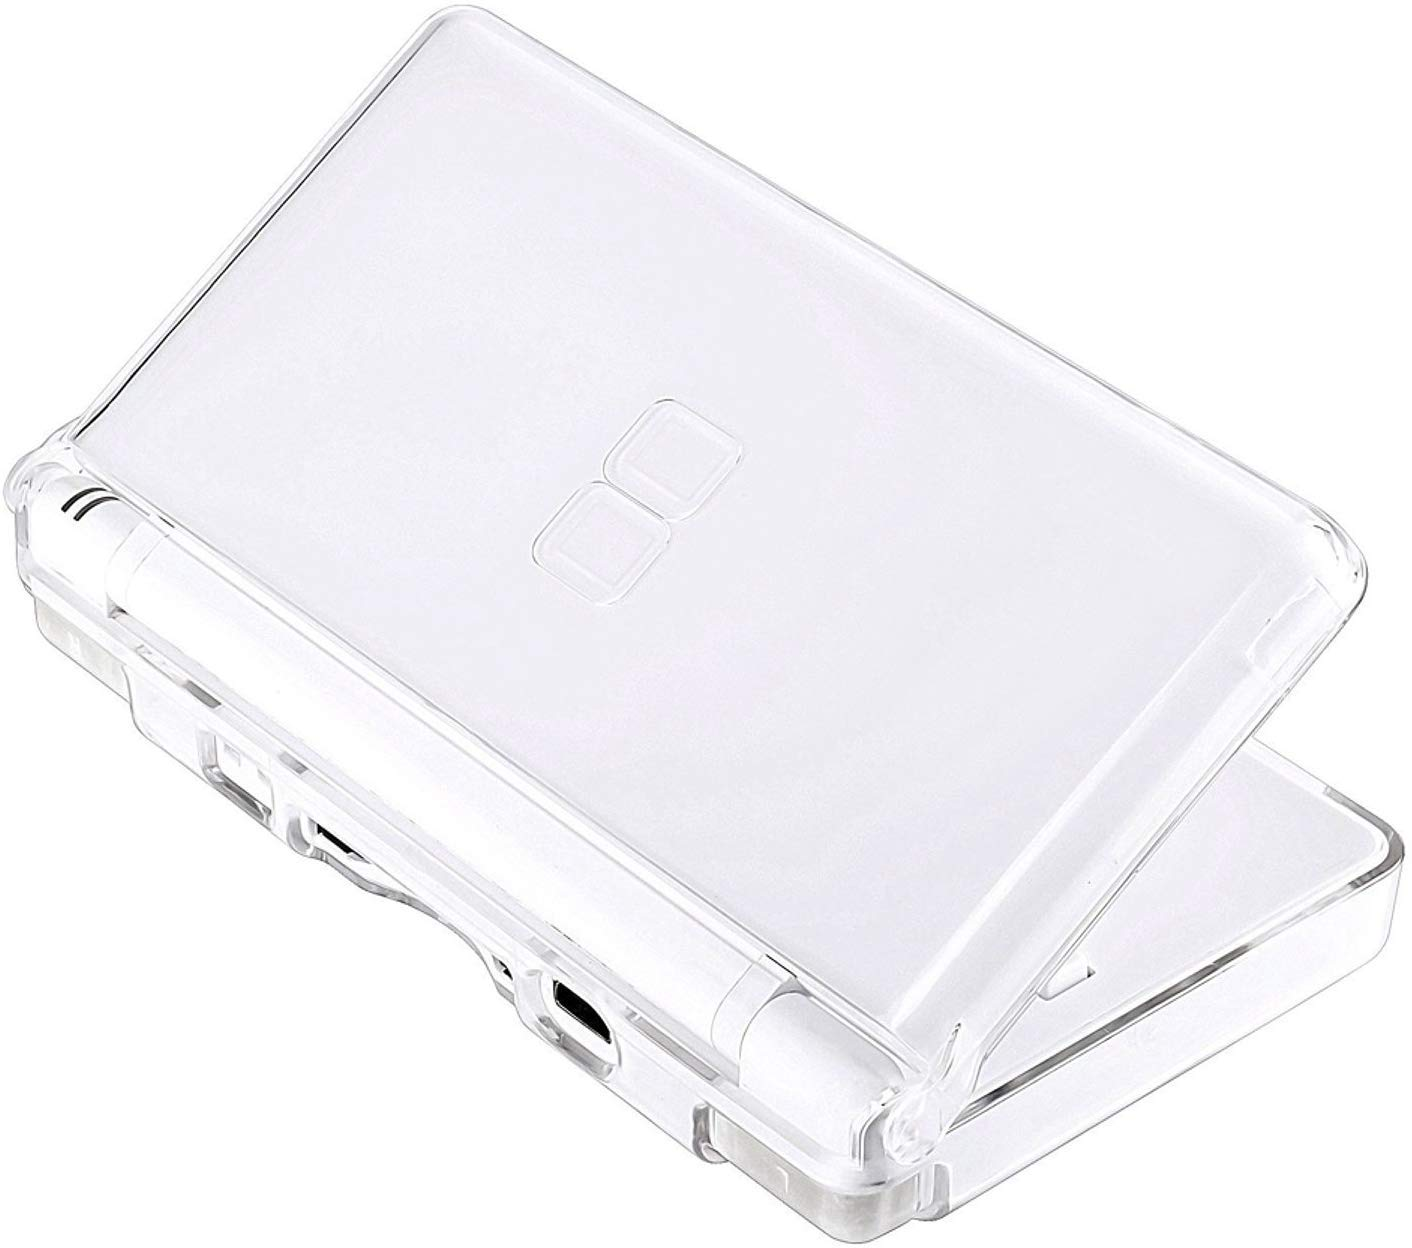 Kailisen Transparent Hard Case Cover Compatible with Nintendo DS Lite NDSL, Replacement Protective NDS Lite Crystal Clear Ice Case